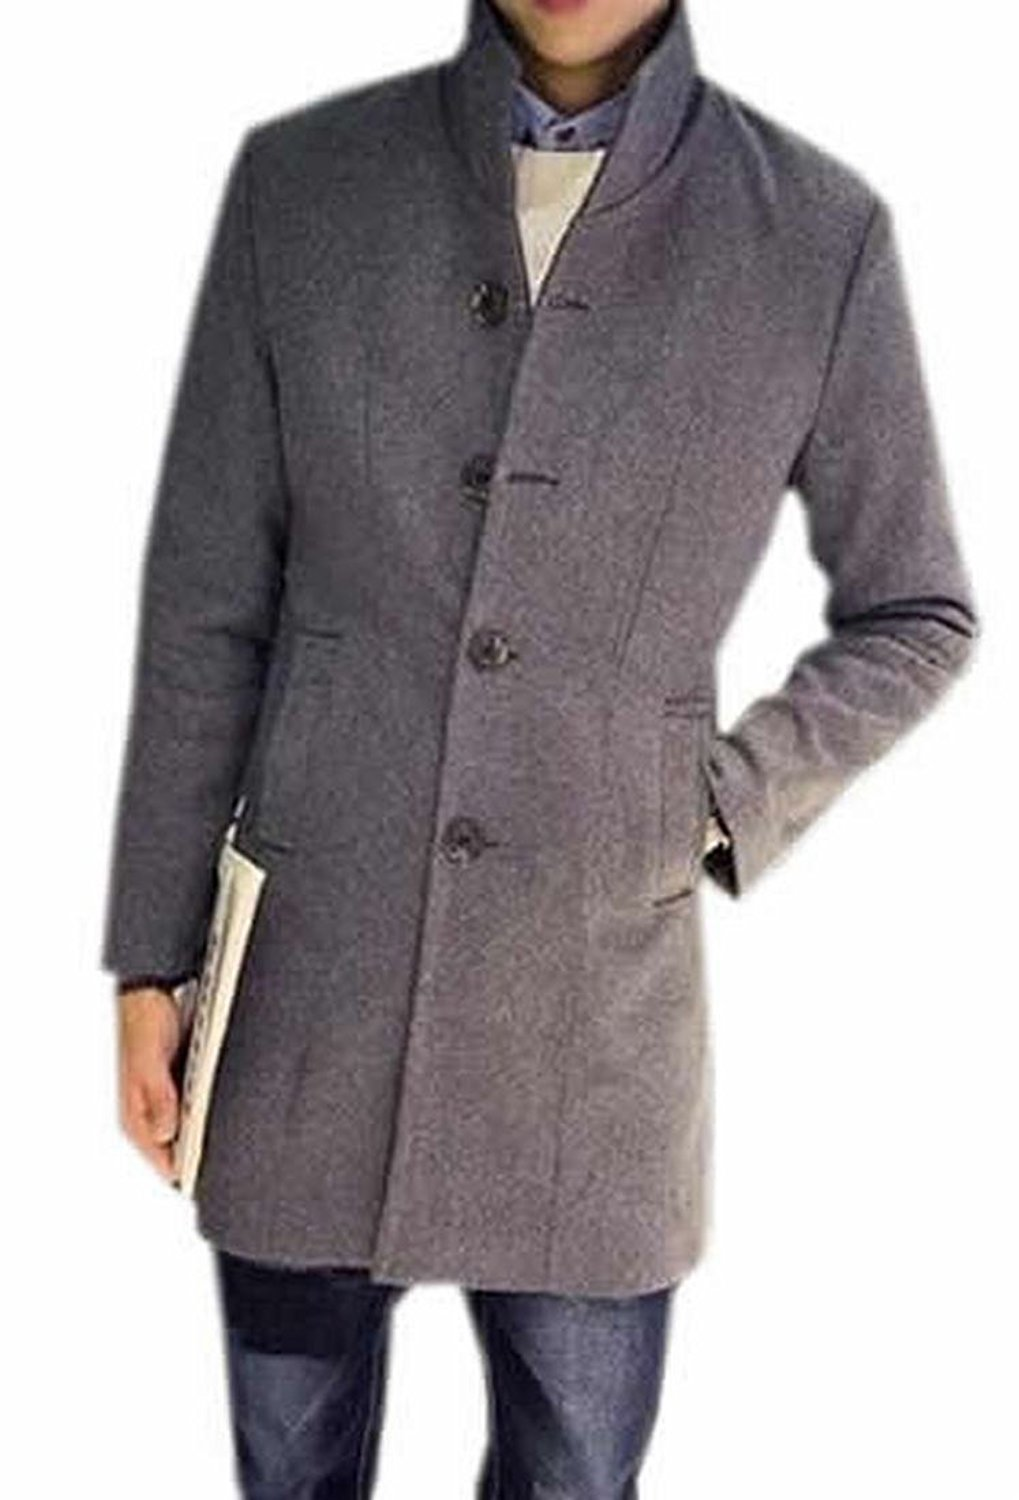 Compare Prices on Peacoat Color- Online Shopping/Buy Low Price ...